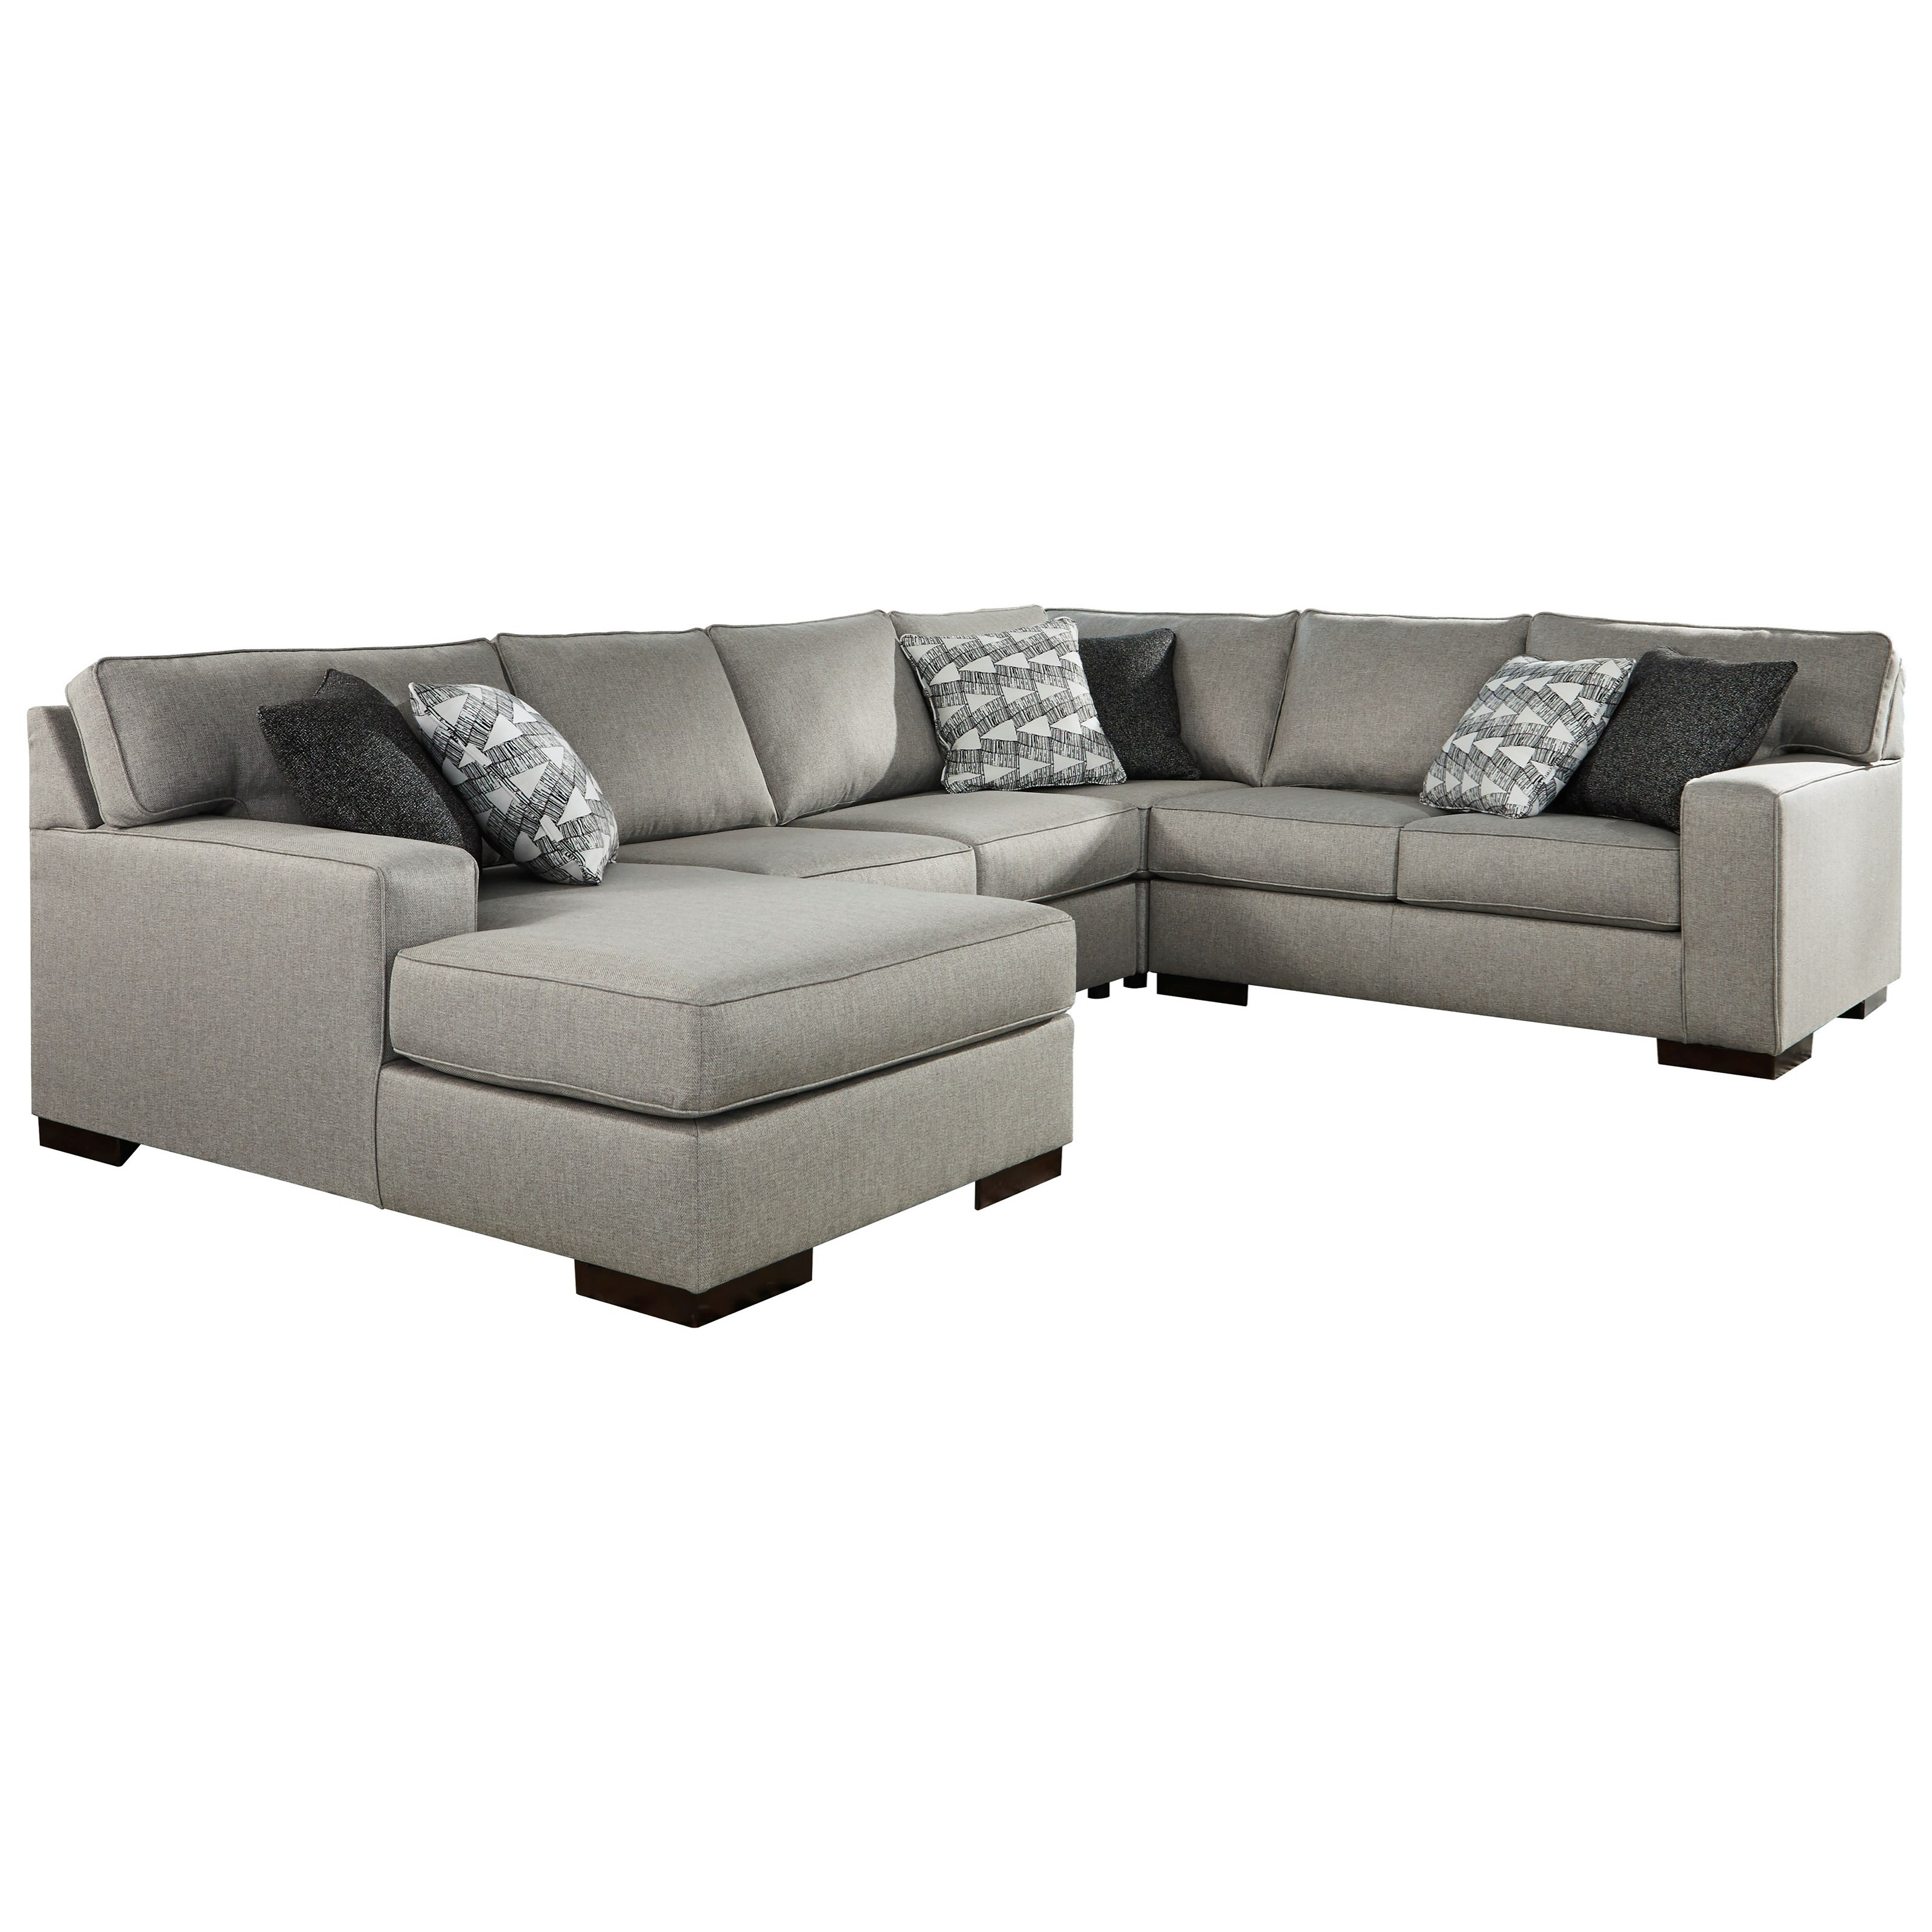 Marsing Nuvella 4-Piece Sectional with Chaise by Benchcraft at HomeWorld Furniture